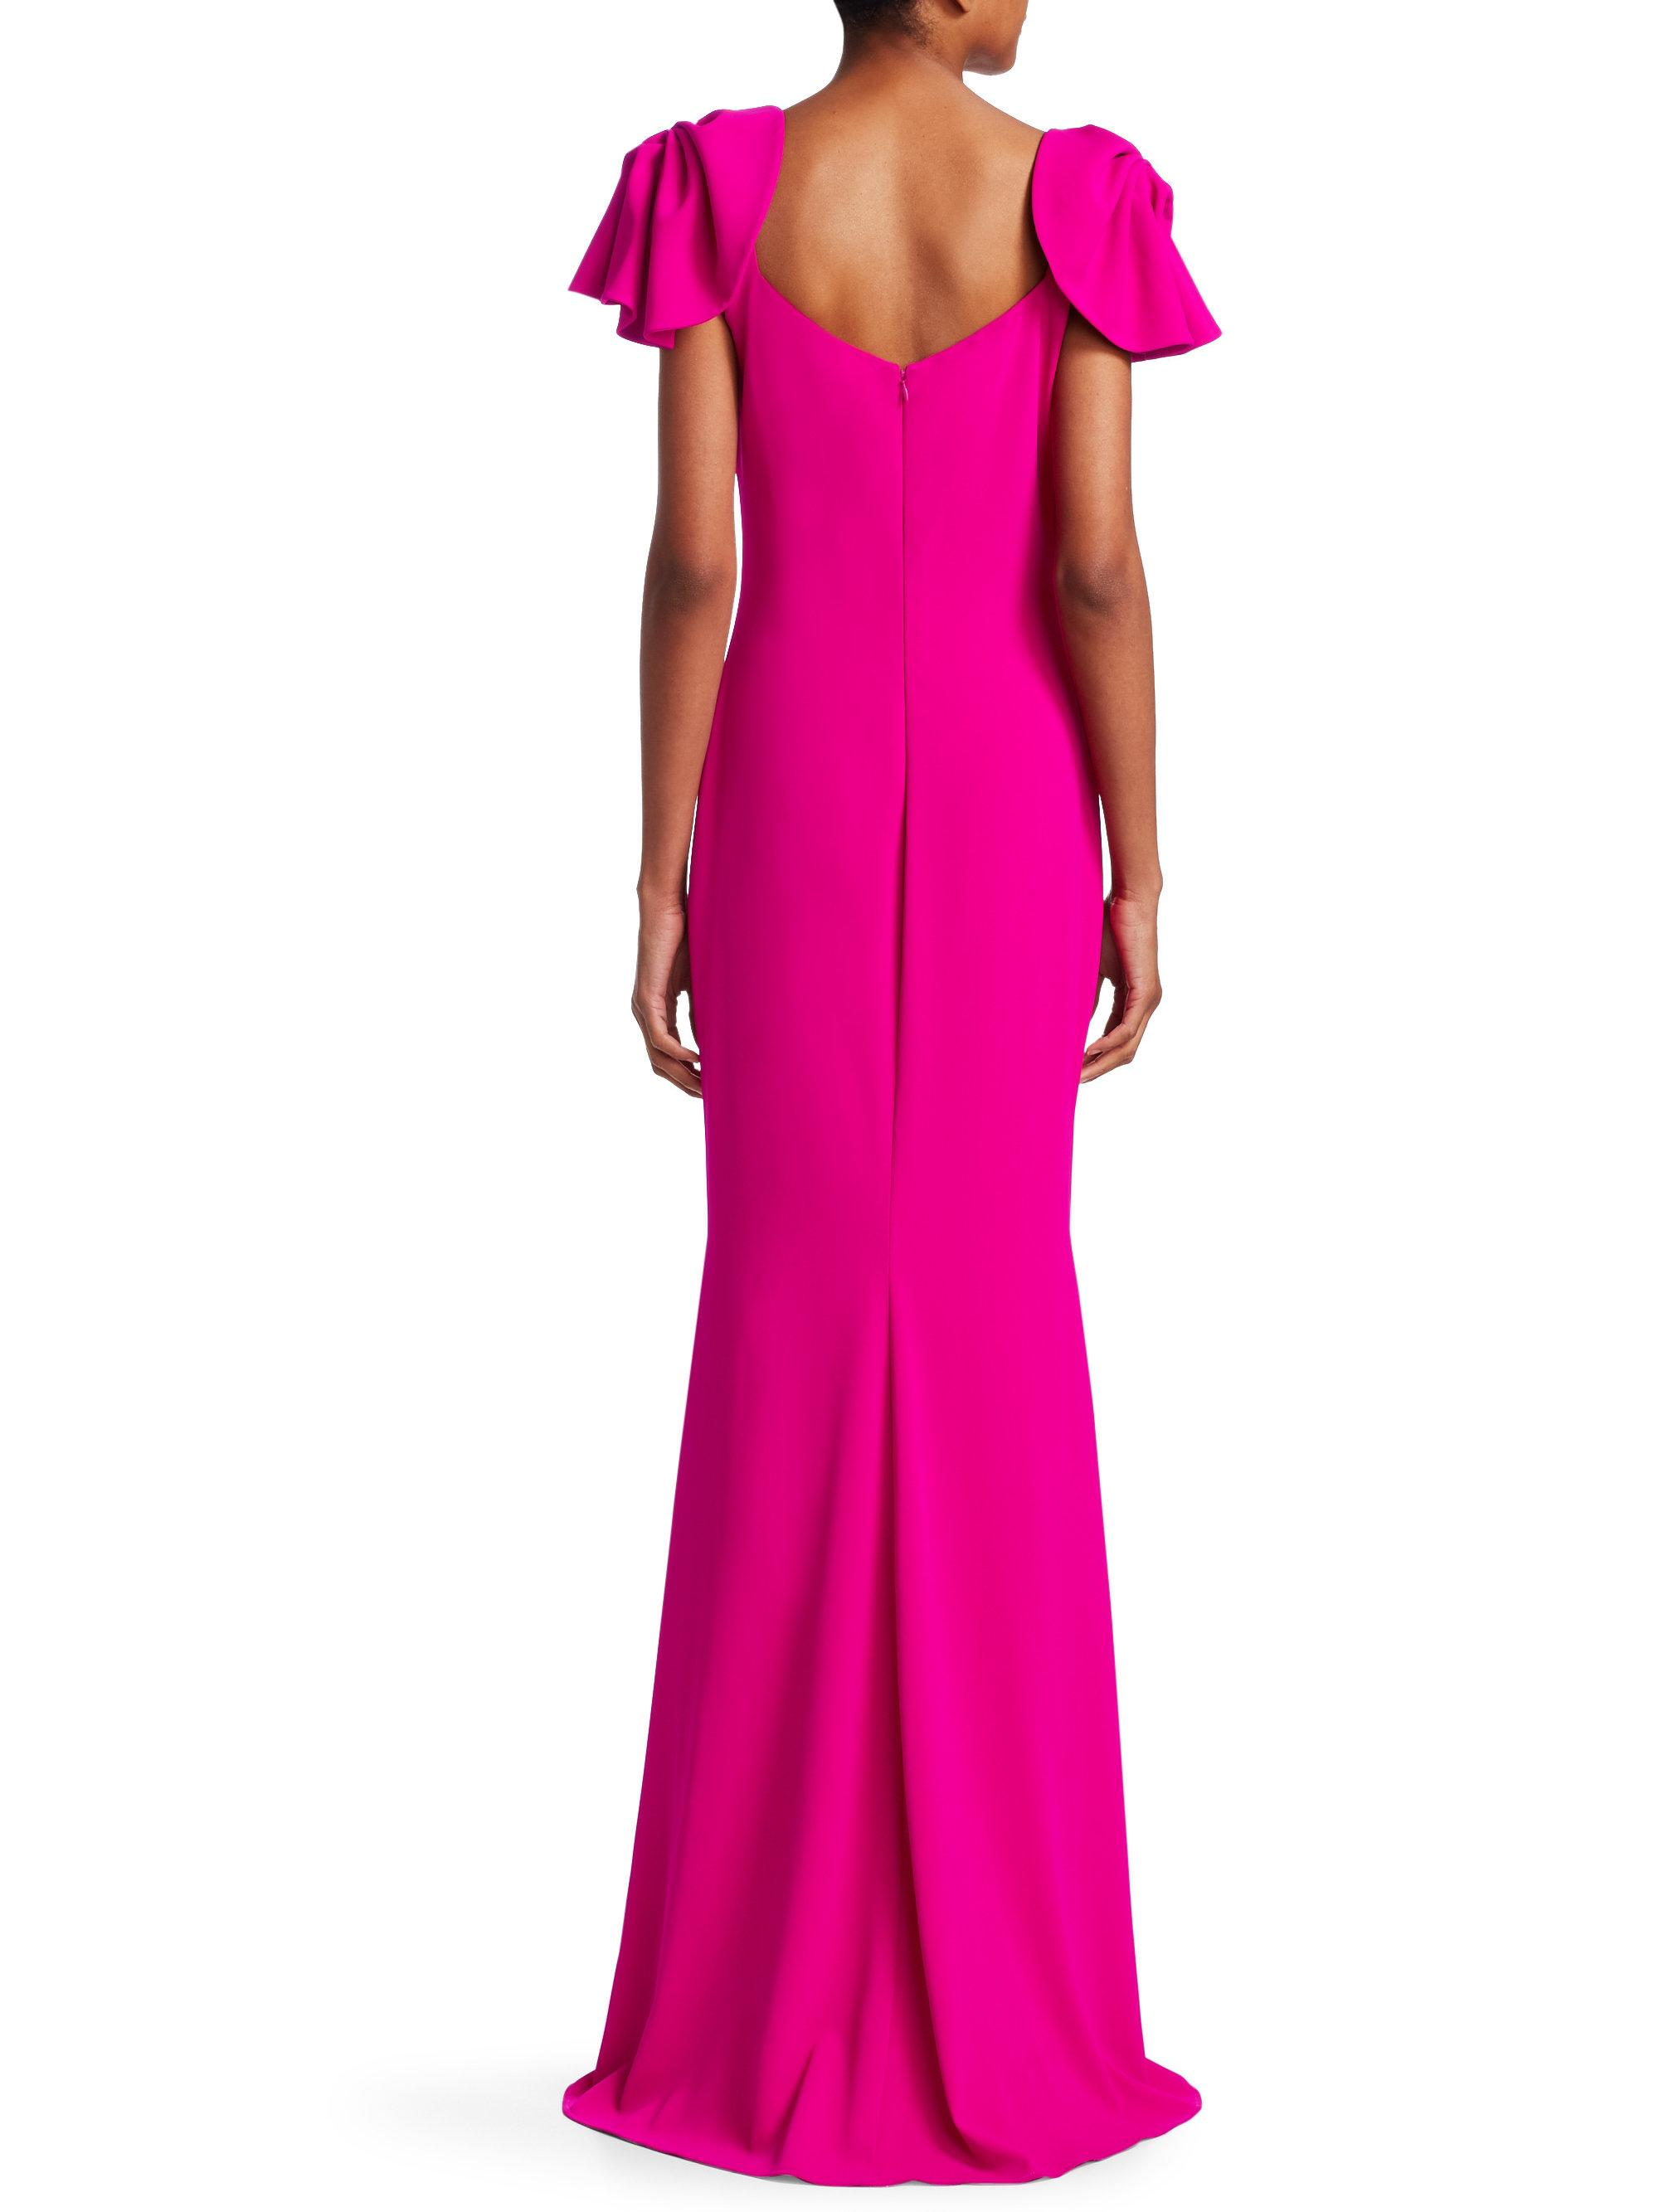 Lyst - Badgley Mischka Ruched-sleeve Bodycon Gown in Pink